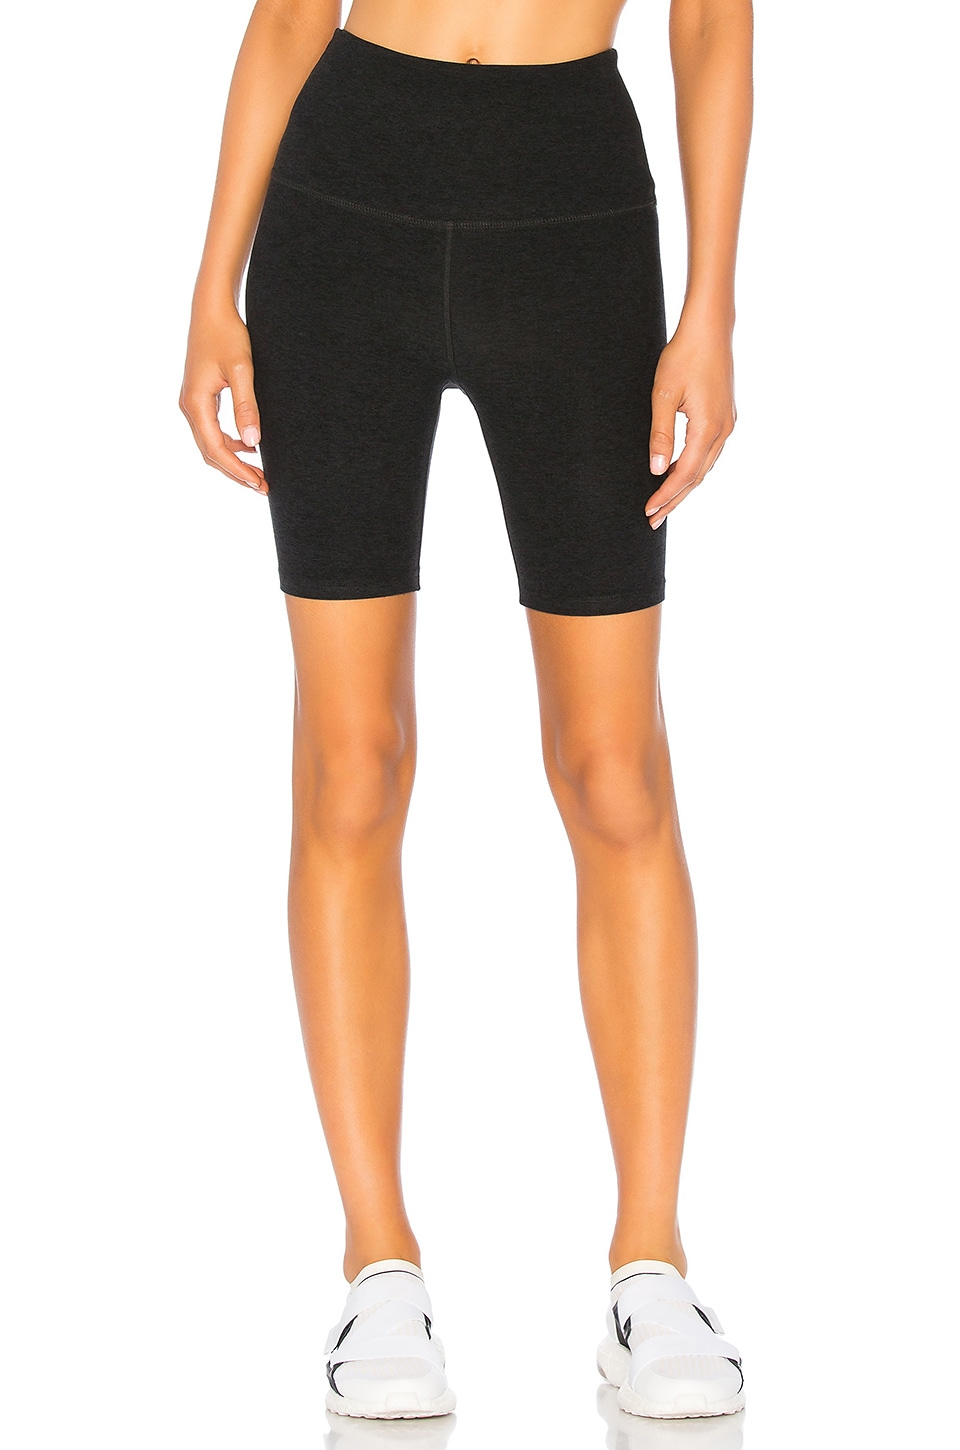 High Waisted Biker Short             Beyond Yoga                                                                                                       CA$ 95.49 2